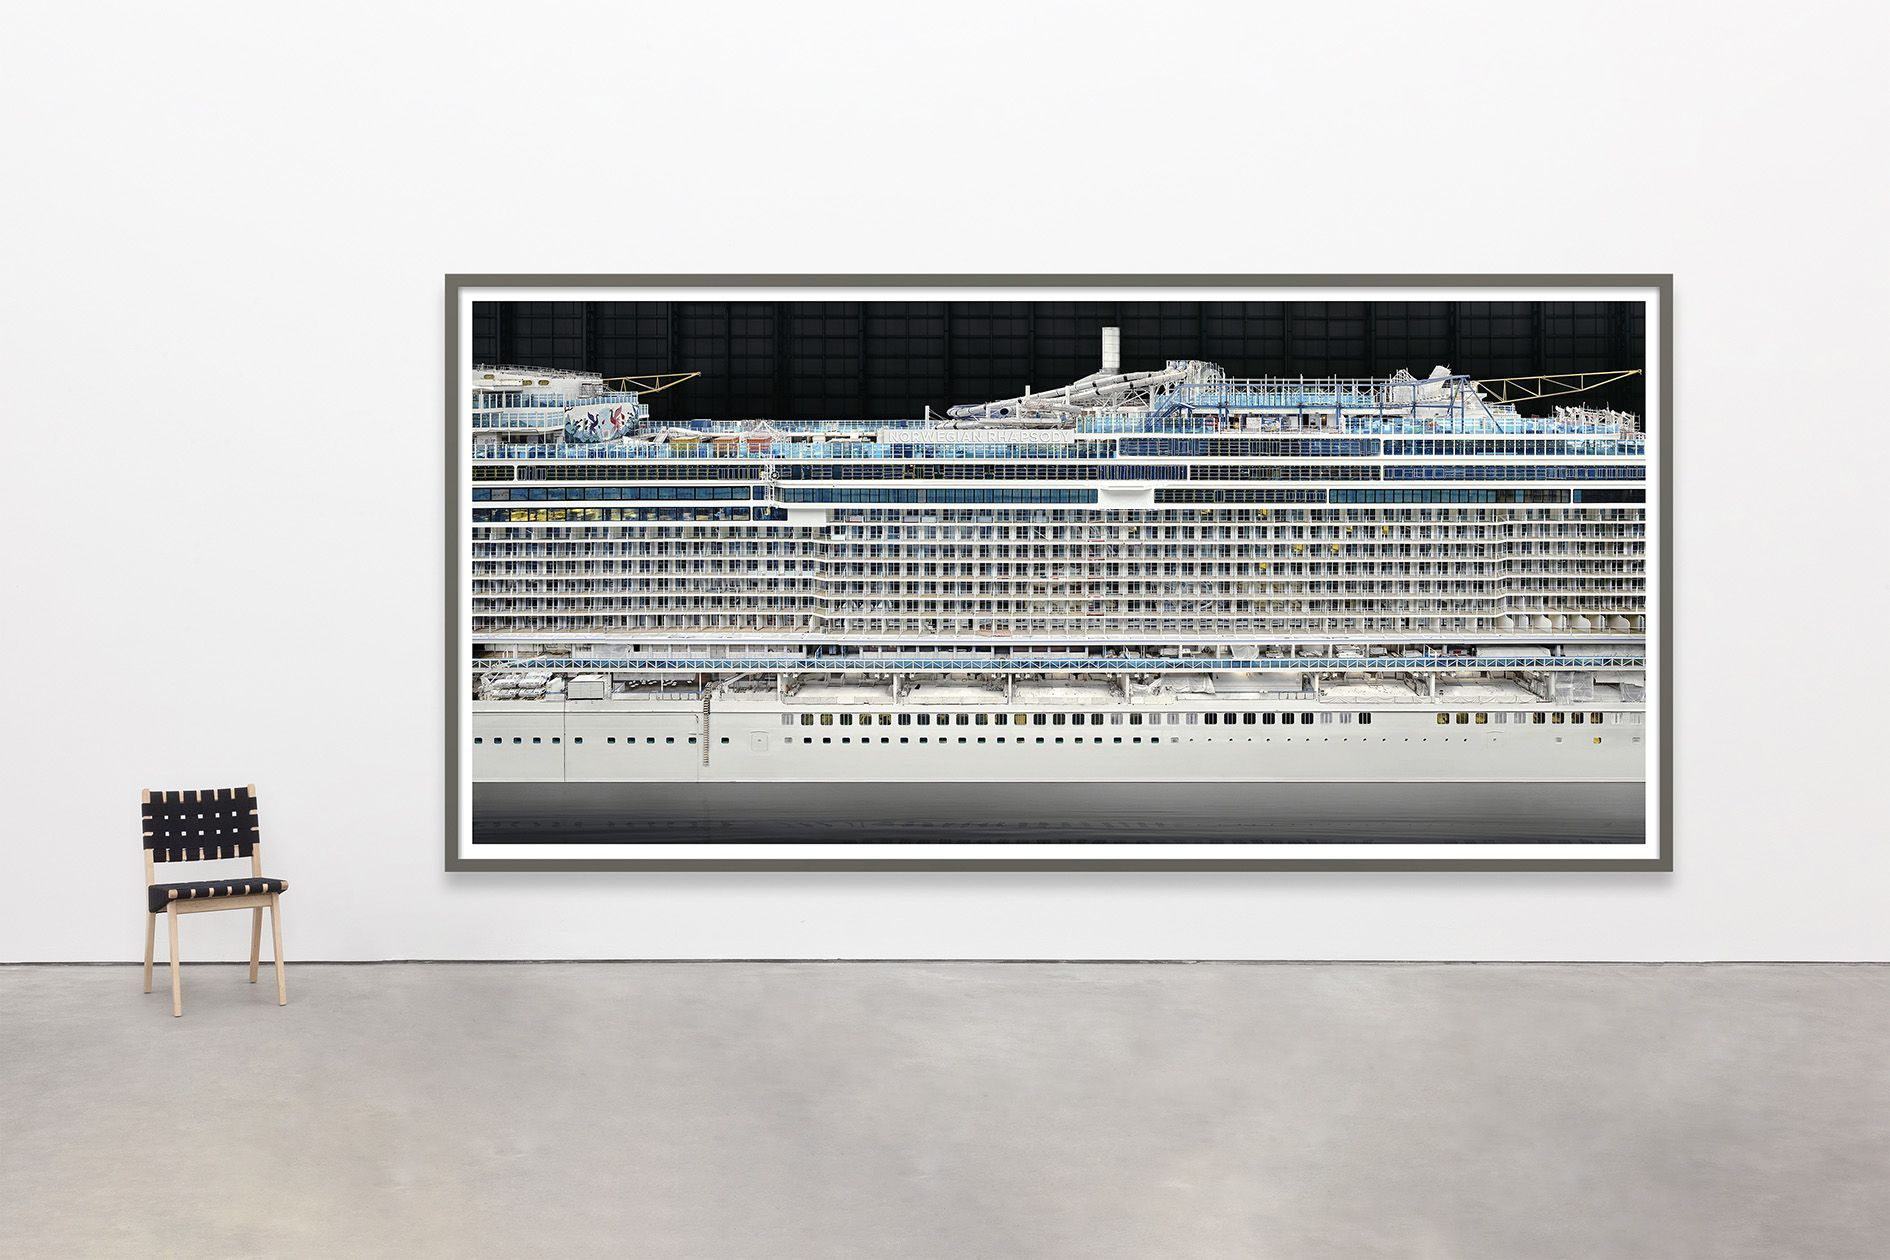 Andreas Gursky – Space is Time